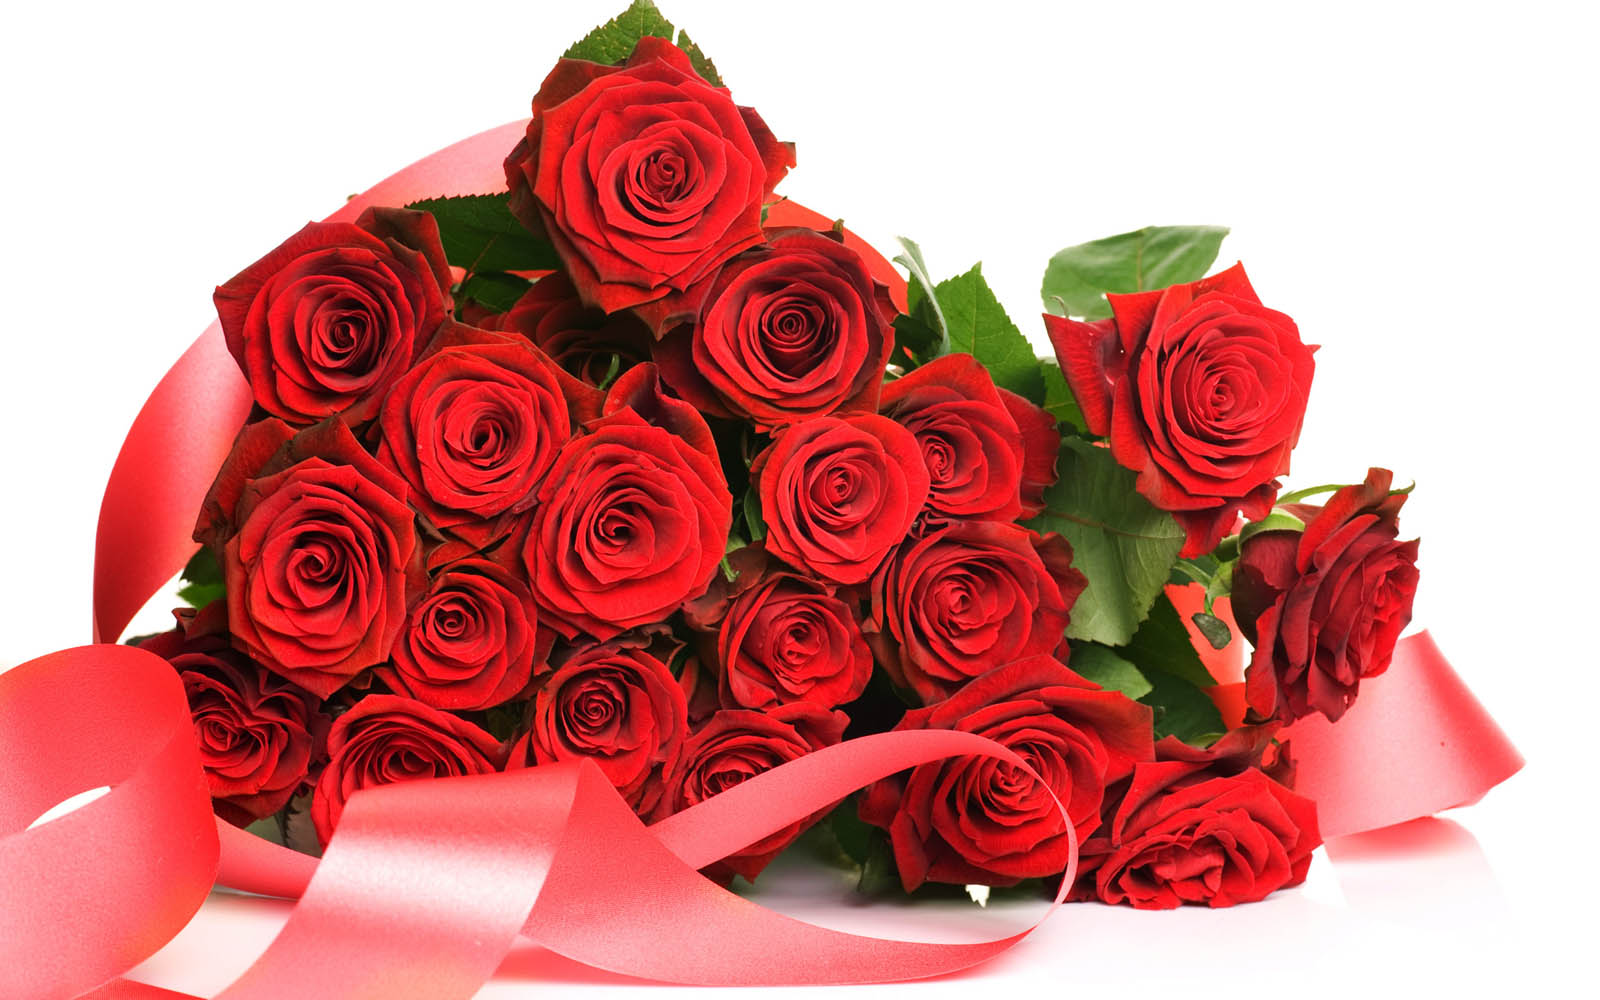 red roses wallpapers - photo #22